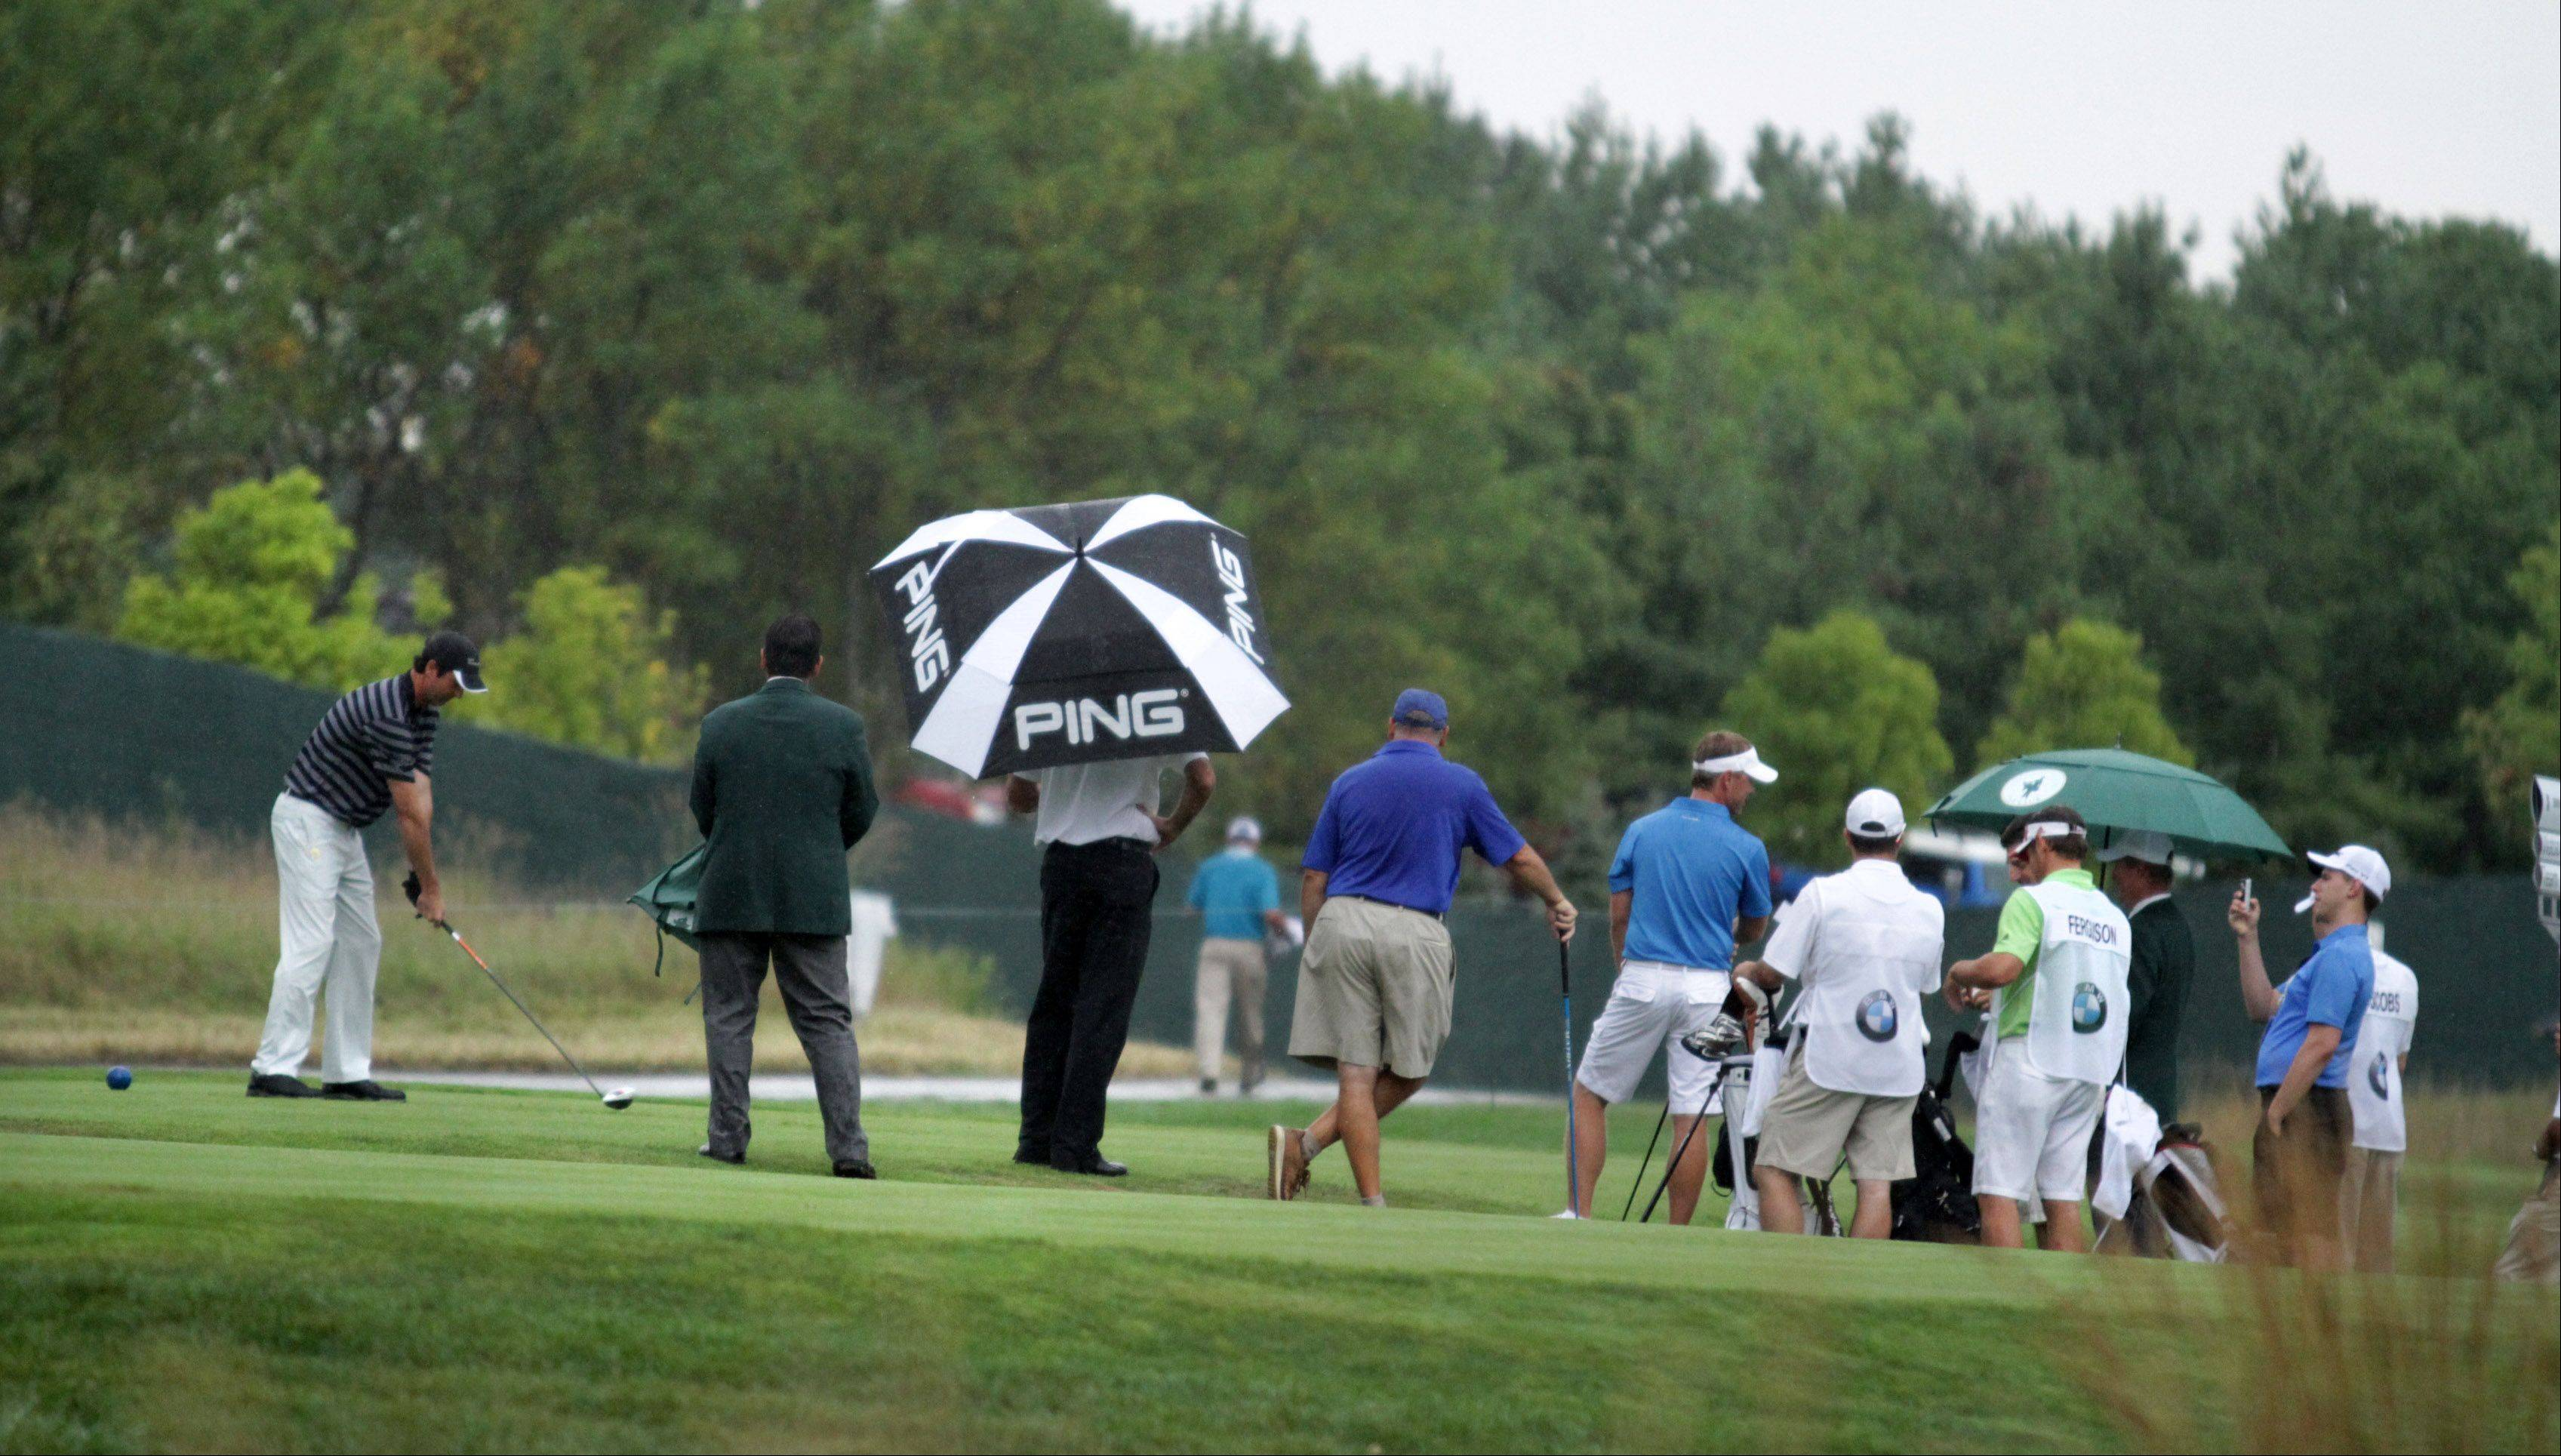 Bubba Watson holds an umbrella during a brief ran as one of his amateur teammates tees off on the tenth hole in the Gardner Heidrick Pro-Am tournament.